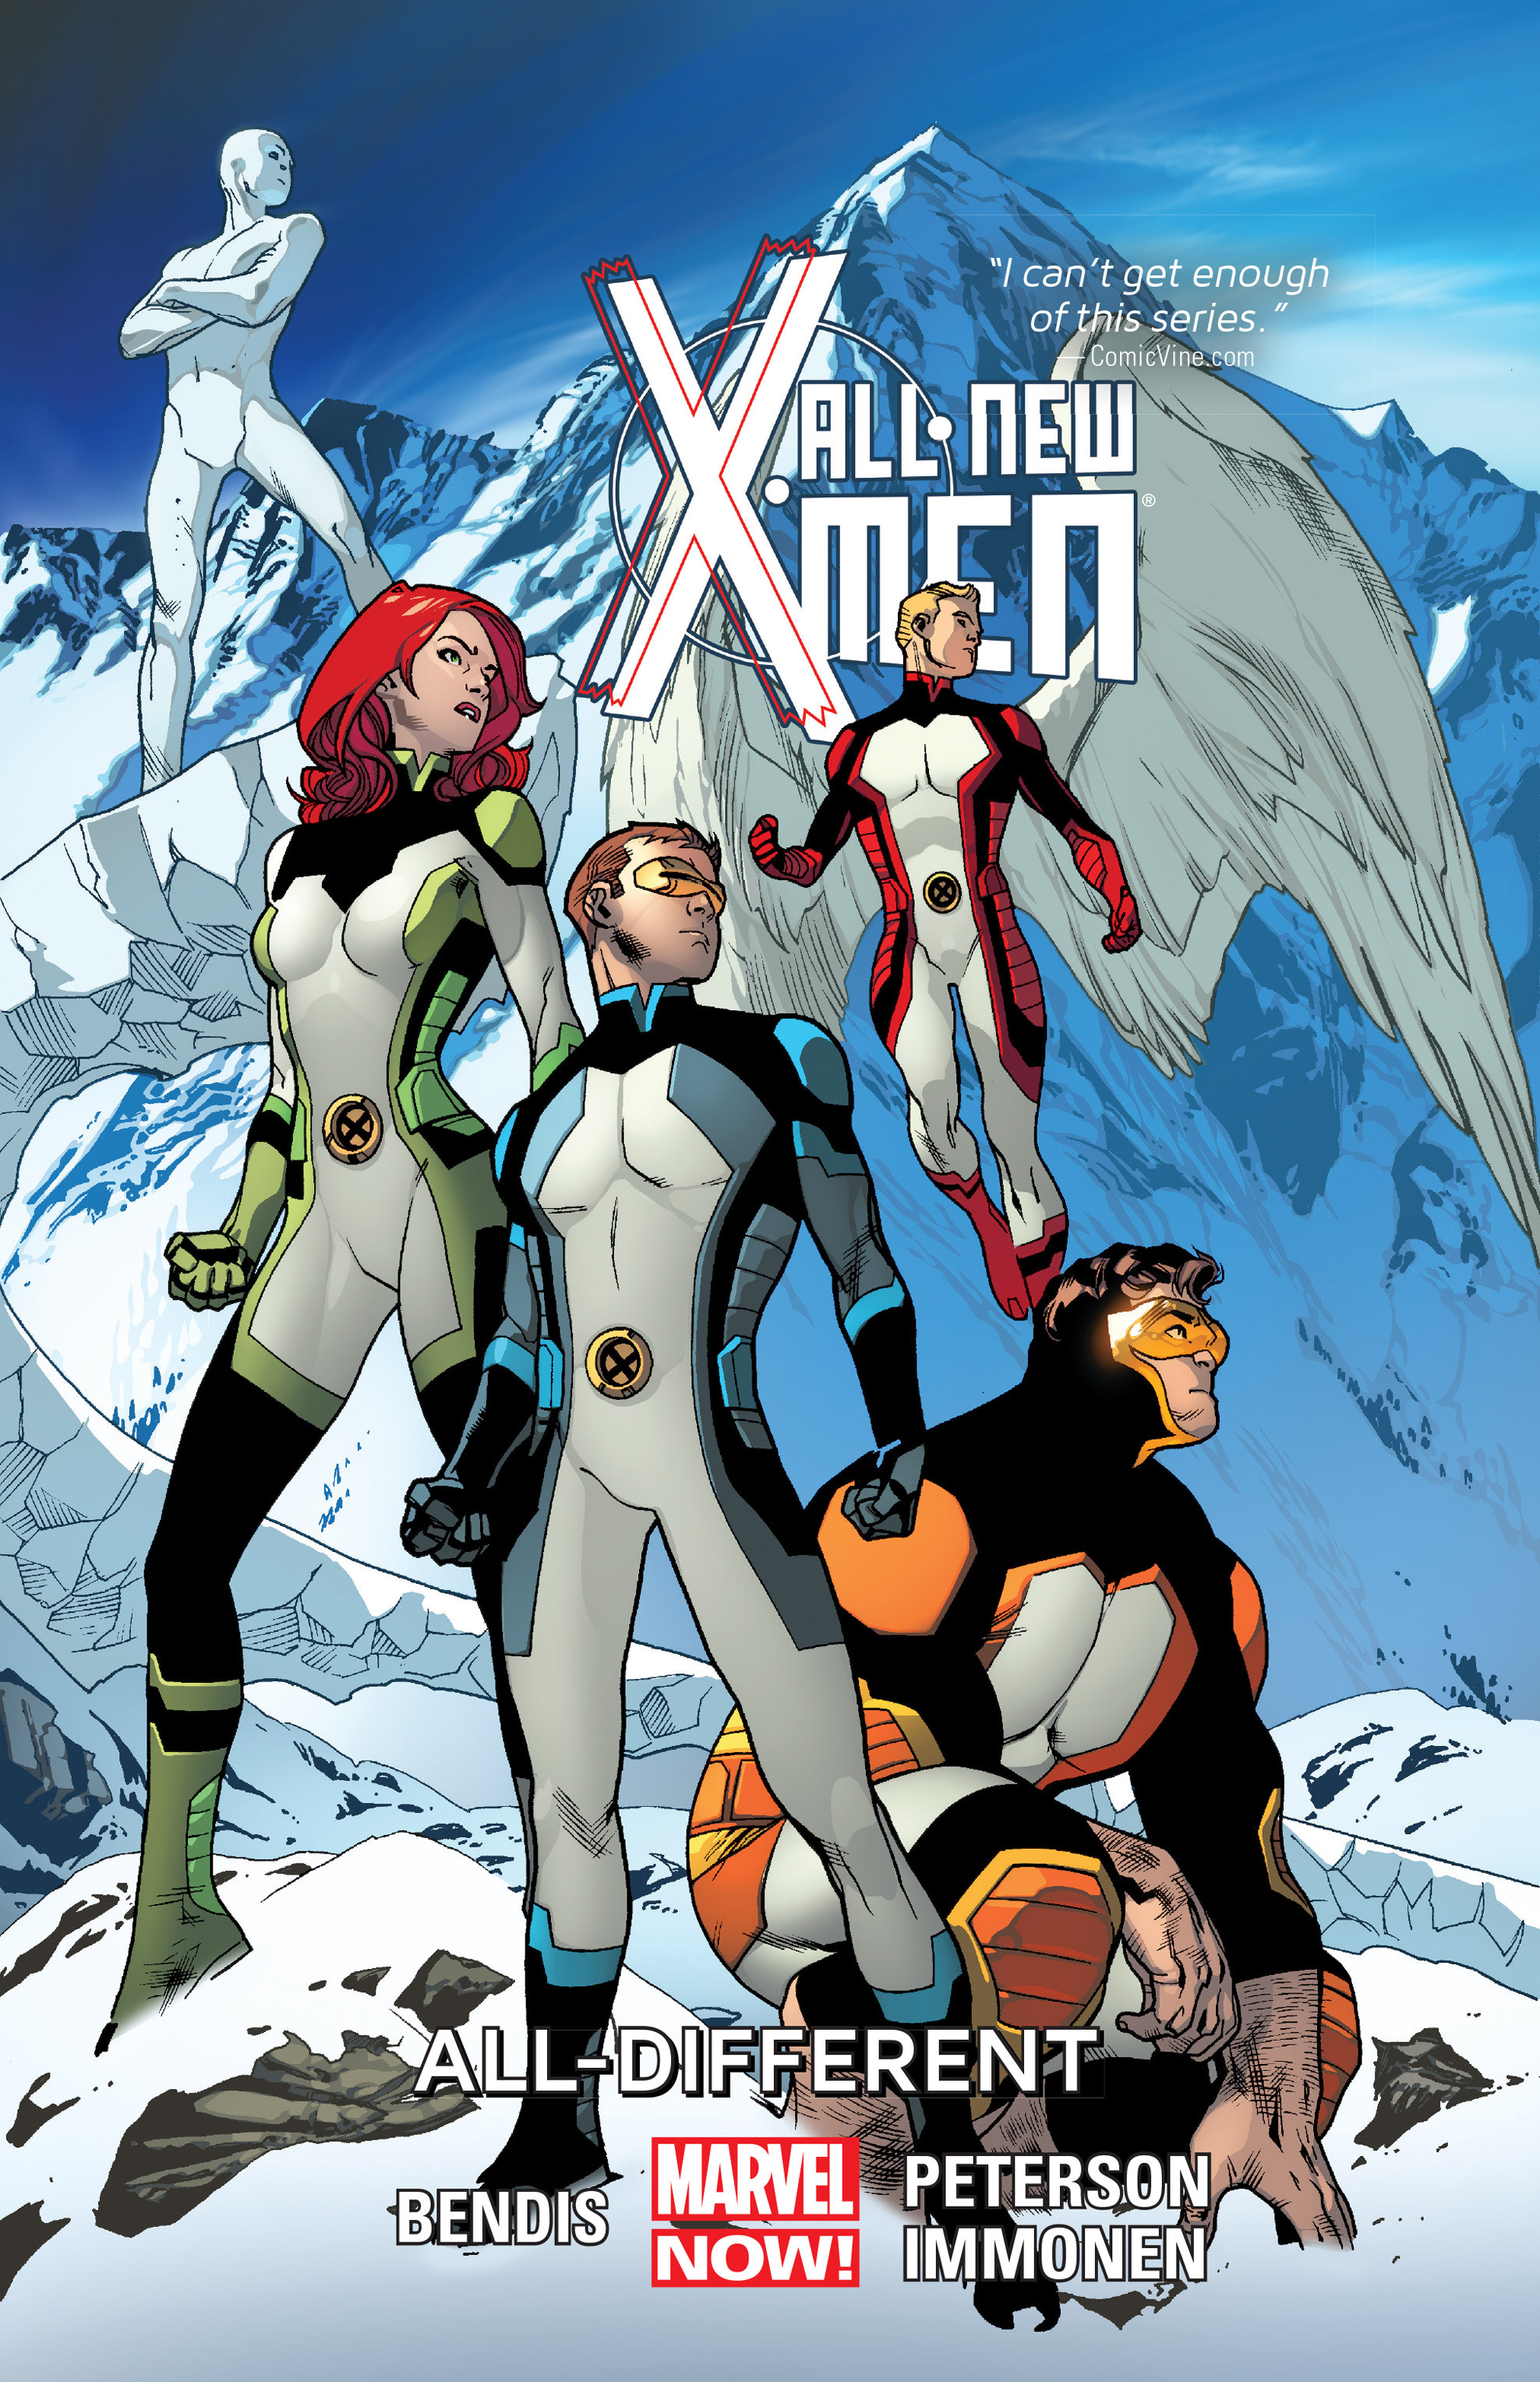 Read online All-New X-Men (2013) comic -  Issue # _Special - All-Different - 1